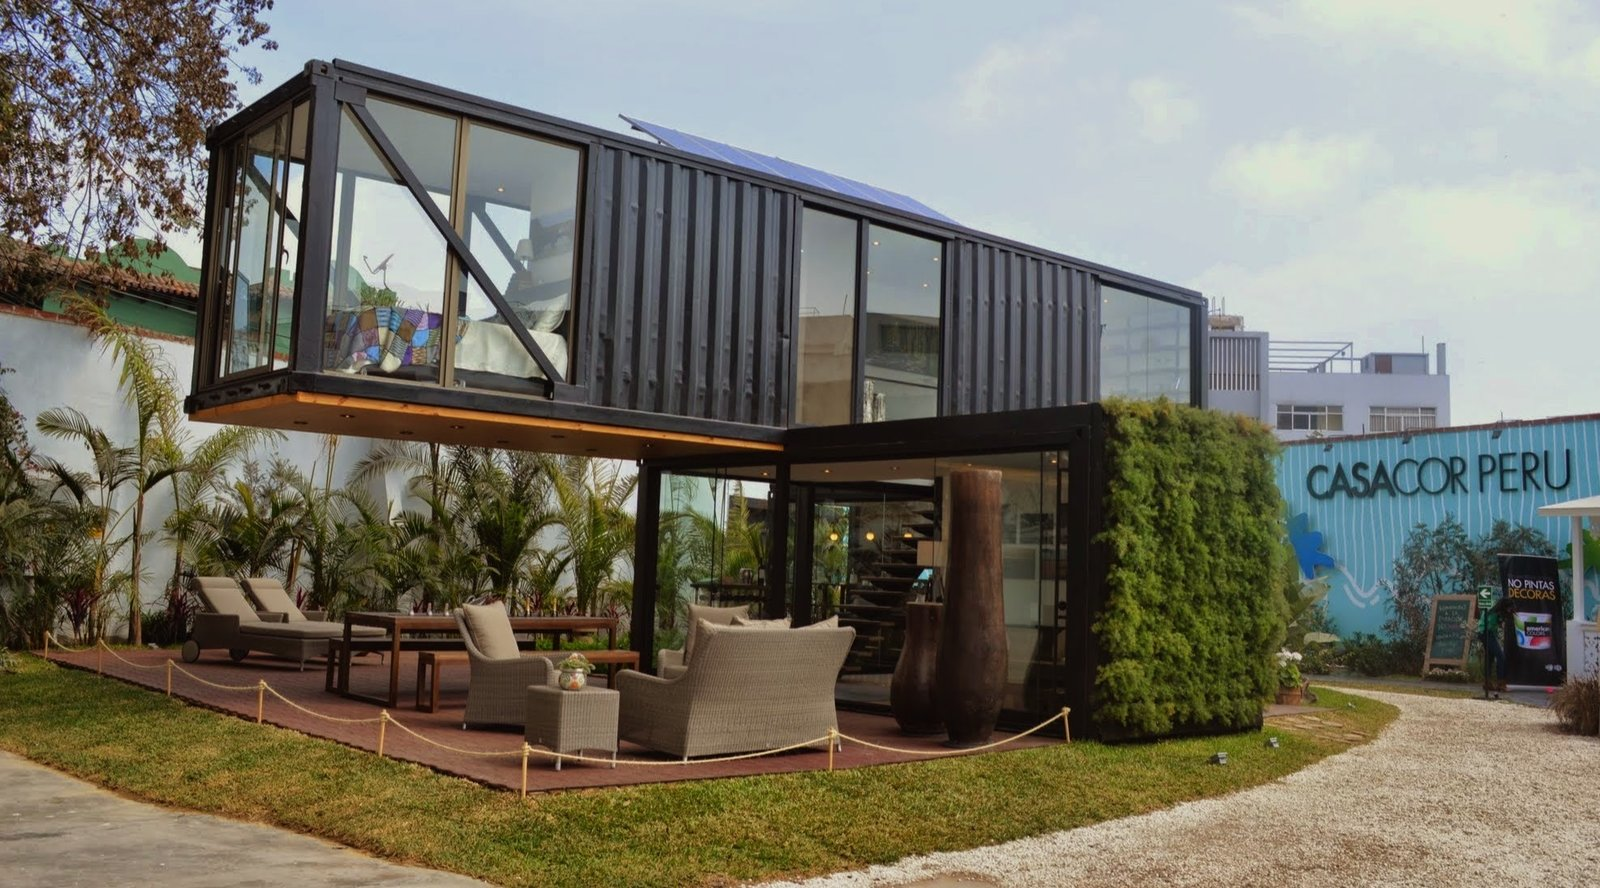 Peruvian-born designer Sachi Fujimori's Casa Reciclada, or Recycled House, was constructed from a used shipping container. Architects Anna Duelo, Úrsula Ludowieg OPhelan and Marc Koenig also collaborated on the project.  Amazing Examples of Shipping Container Architecture by Diana Budds